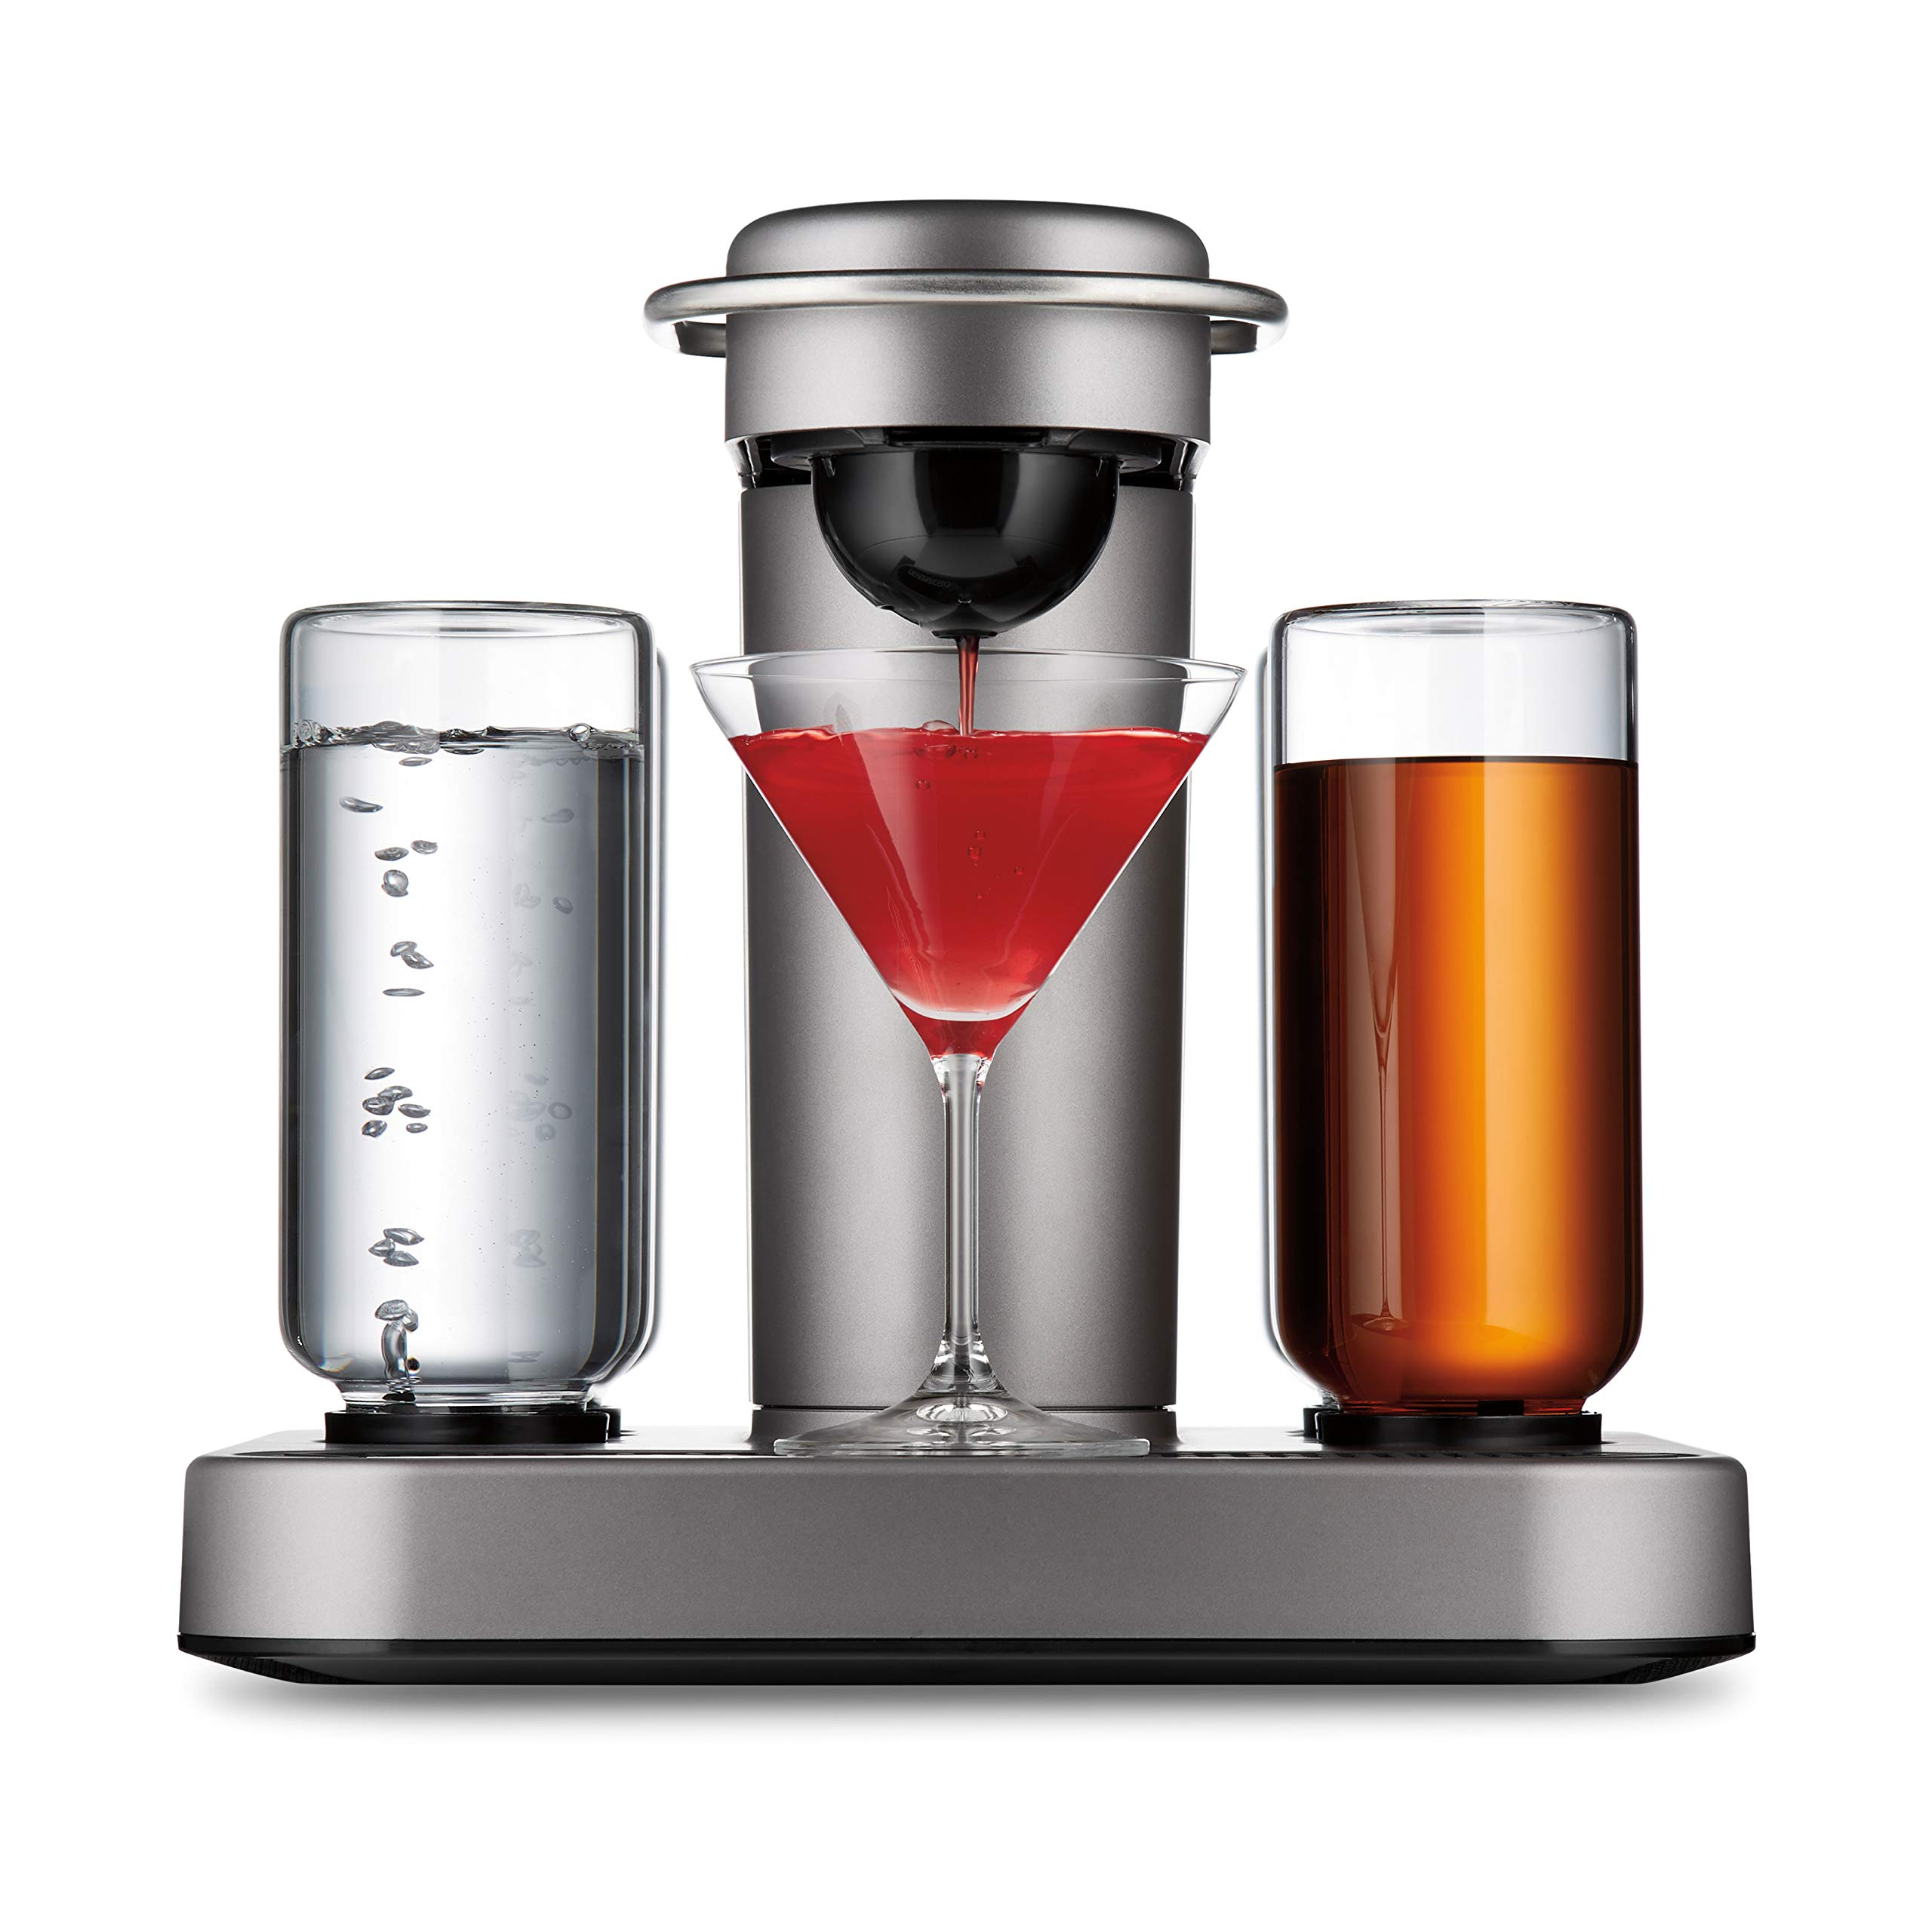 Amazon.com: Bartesian Premium Cocktail and Margarita Machine for the Home  Bar with Push-Button Simplicity and an Easy to Clean Design (55300):  Kitchen & Dining